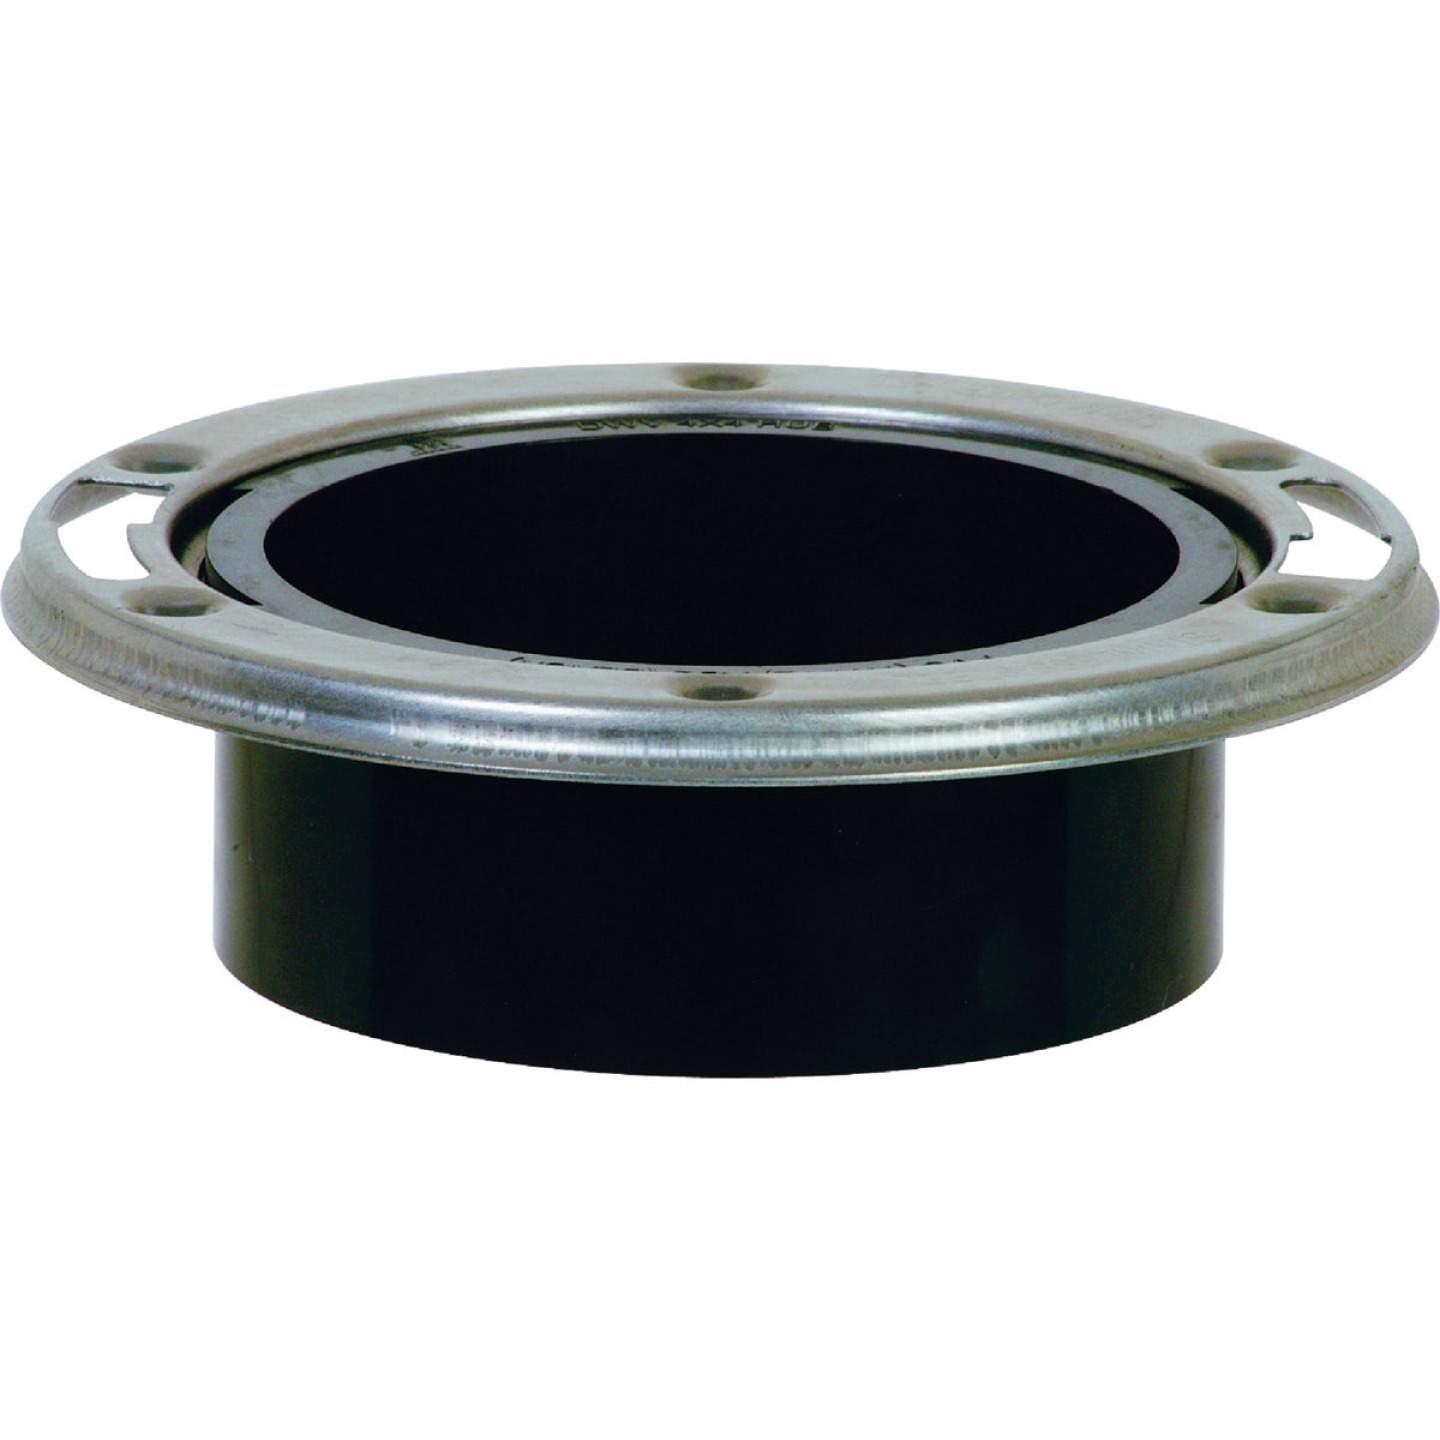 ABS 4 In. Hub Closet Flange with Stainless Steel Ring  Image 1